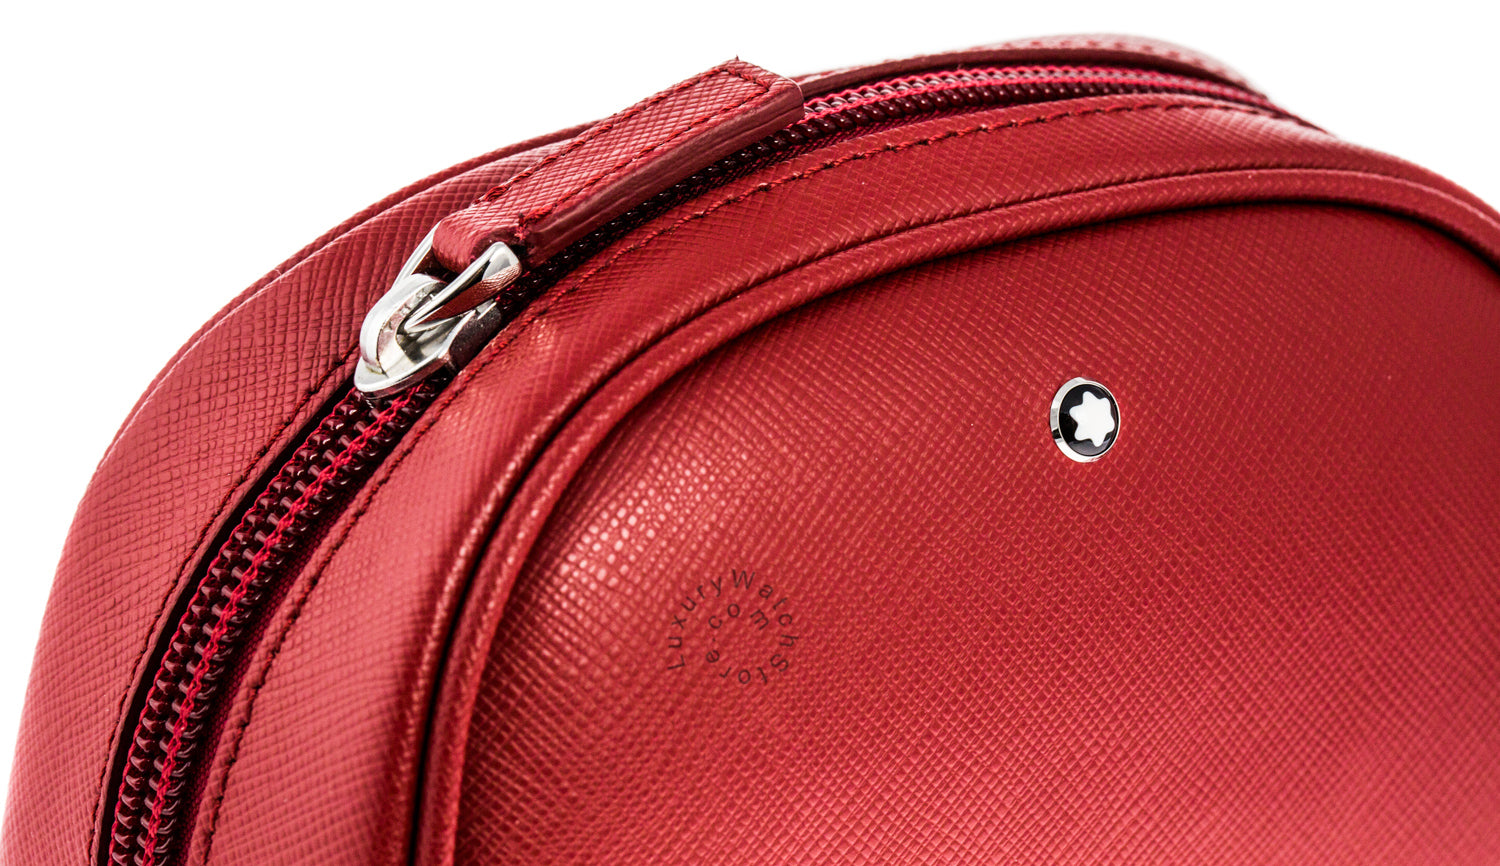 Montblanc Sartorial Red Saffiano Leather Vanity Bag Small  116765